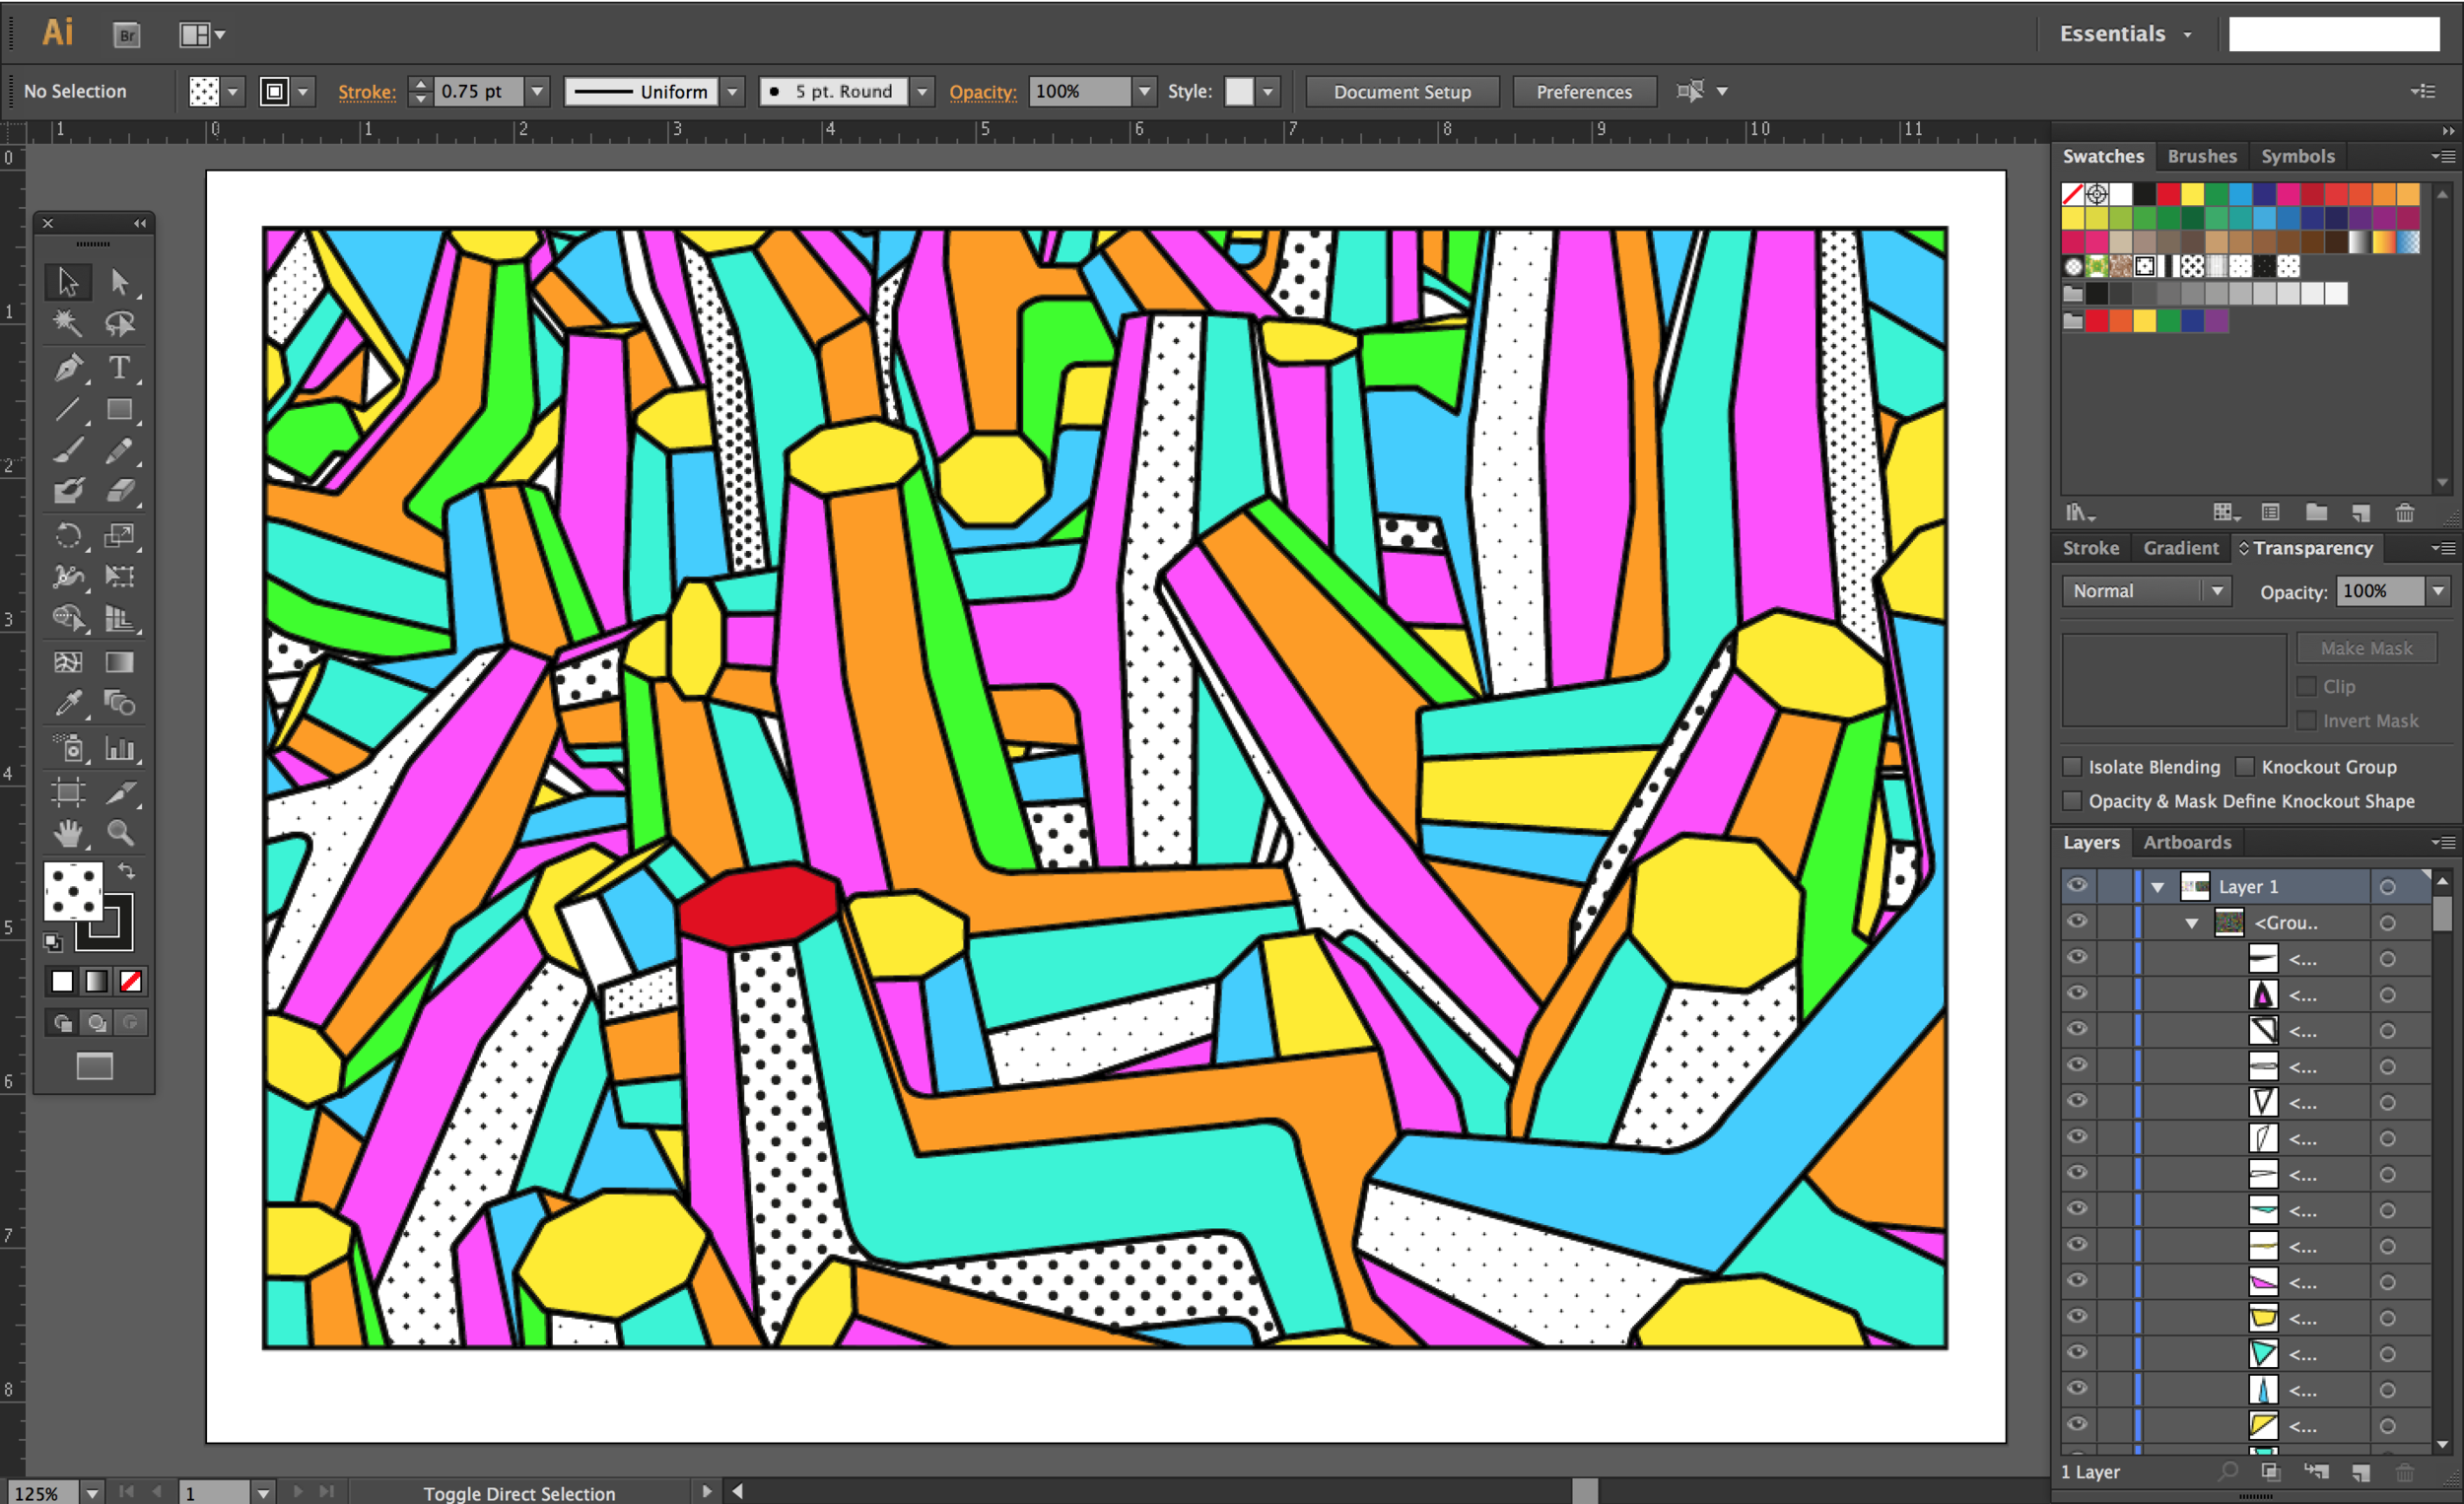 Vectorised in Illustrator for other applications.